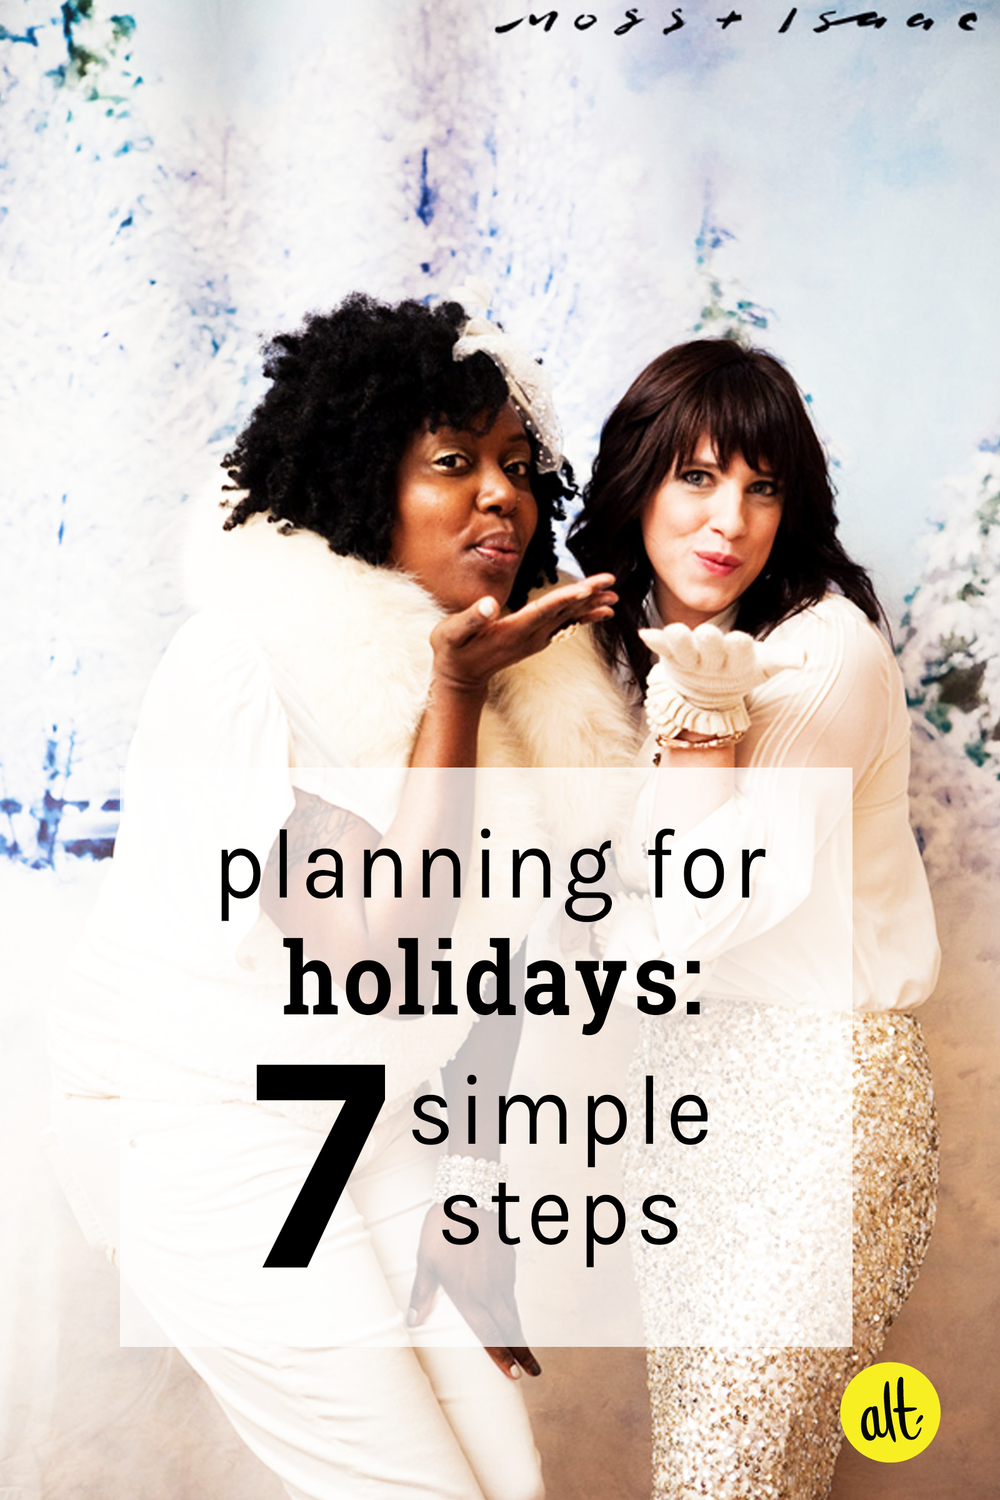 Don't let the holidays overwhelm you! Seven simple steps for navigating the holidays with ease.